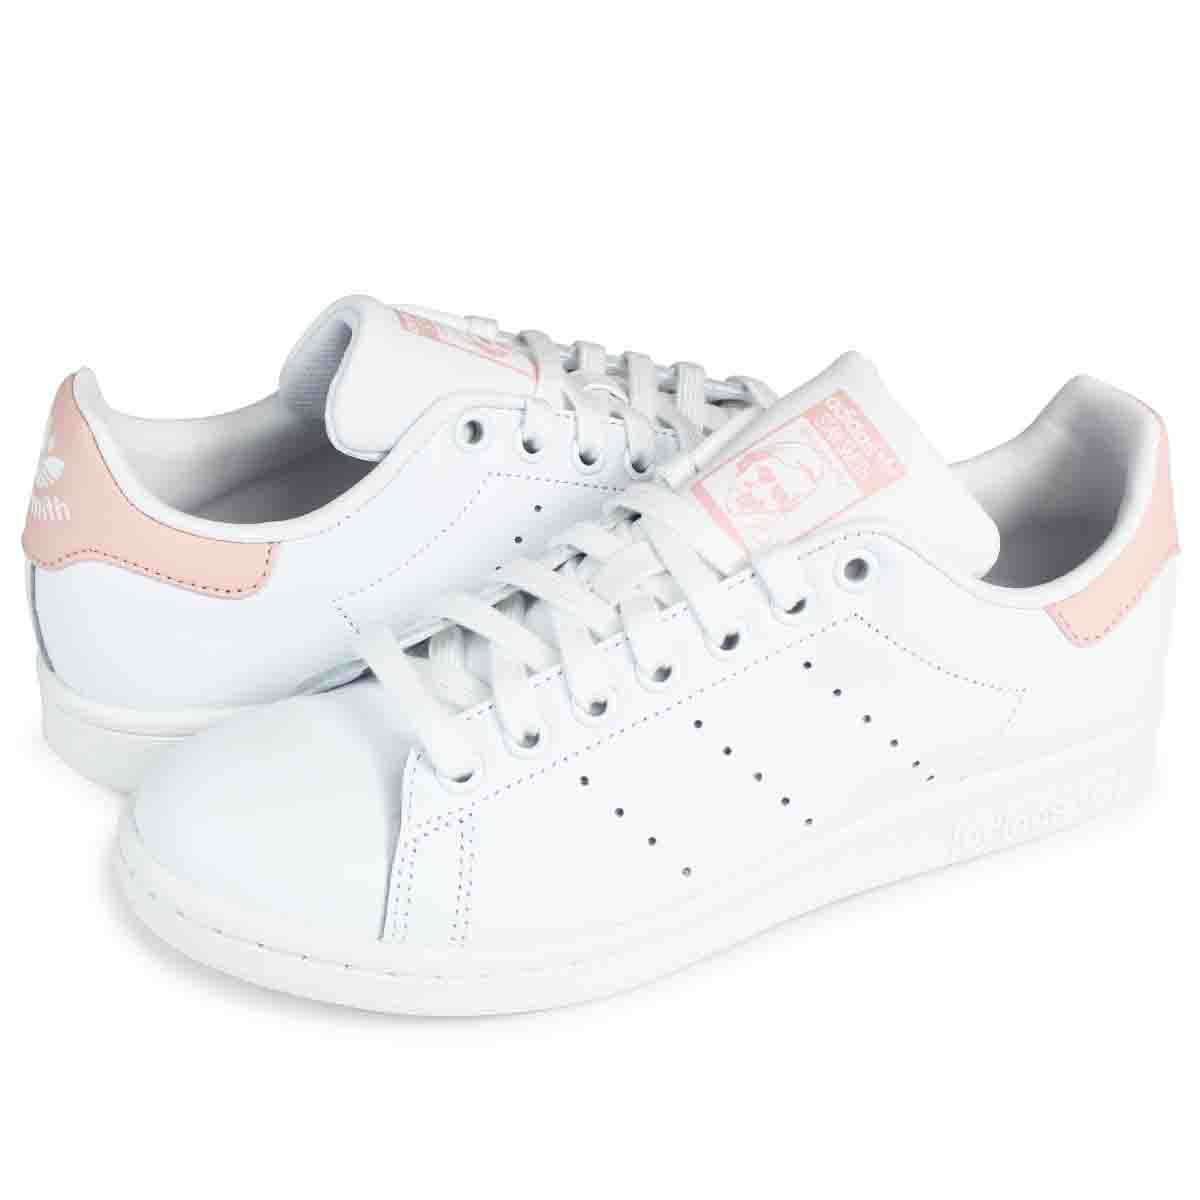 on sale 747ae e2ee2 adidas originals STAN SMITH Adidas Stan Smith Lady's sneakers AC8413 shoes  white [11/13 Shinnyu load] [1711]